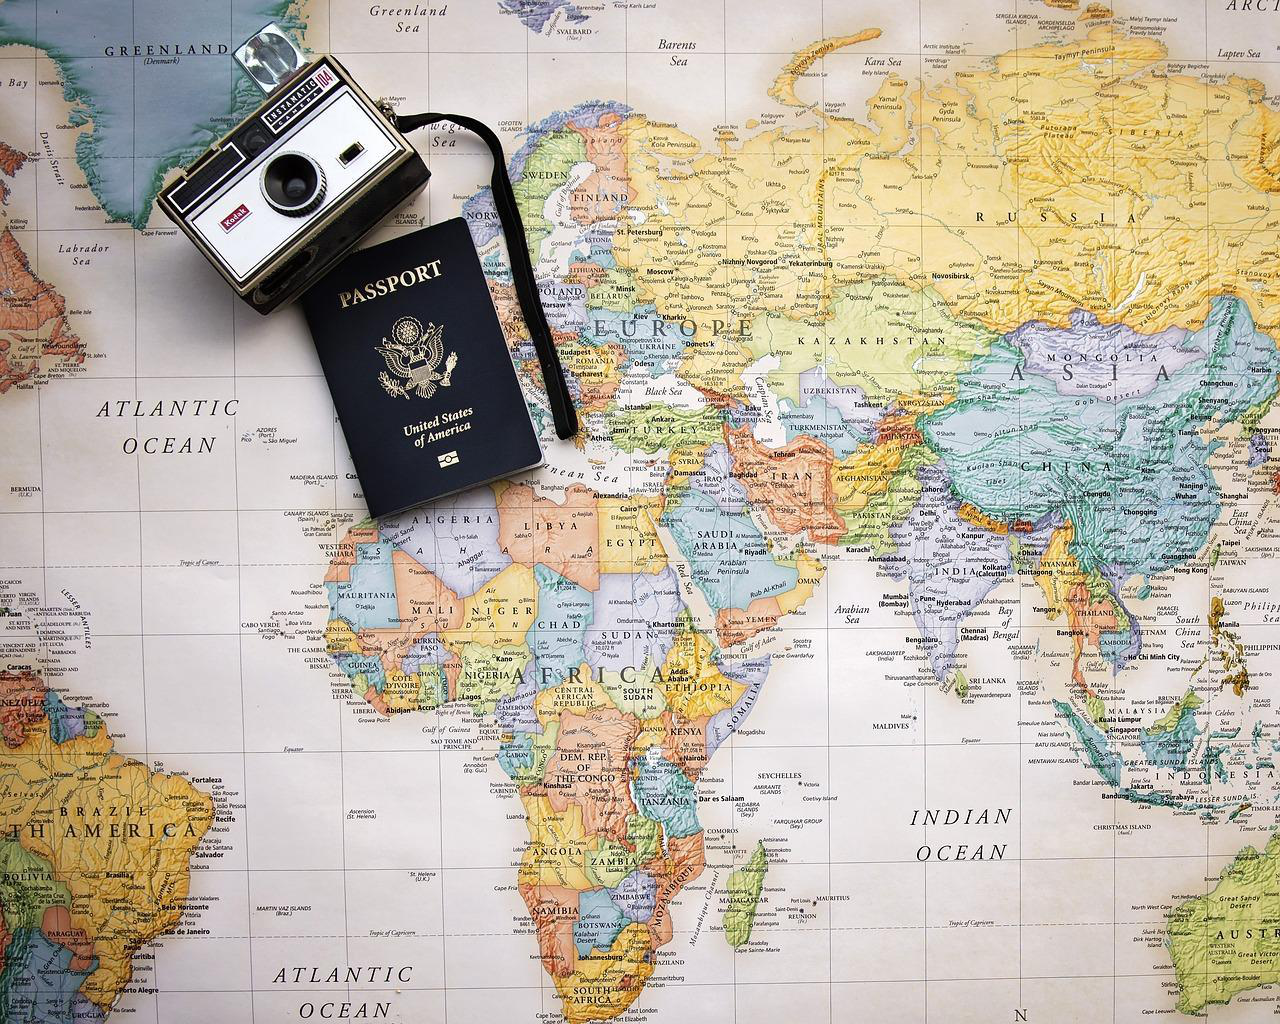 Top 10 Travel Tips for abroad